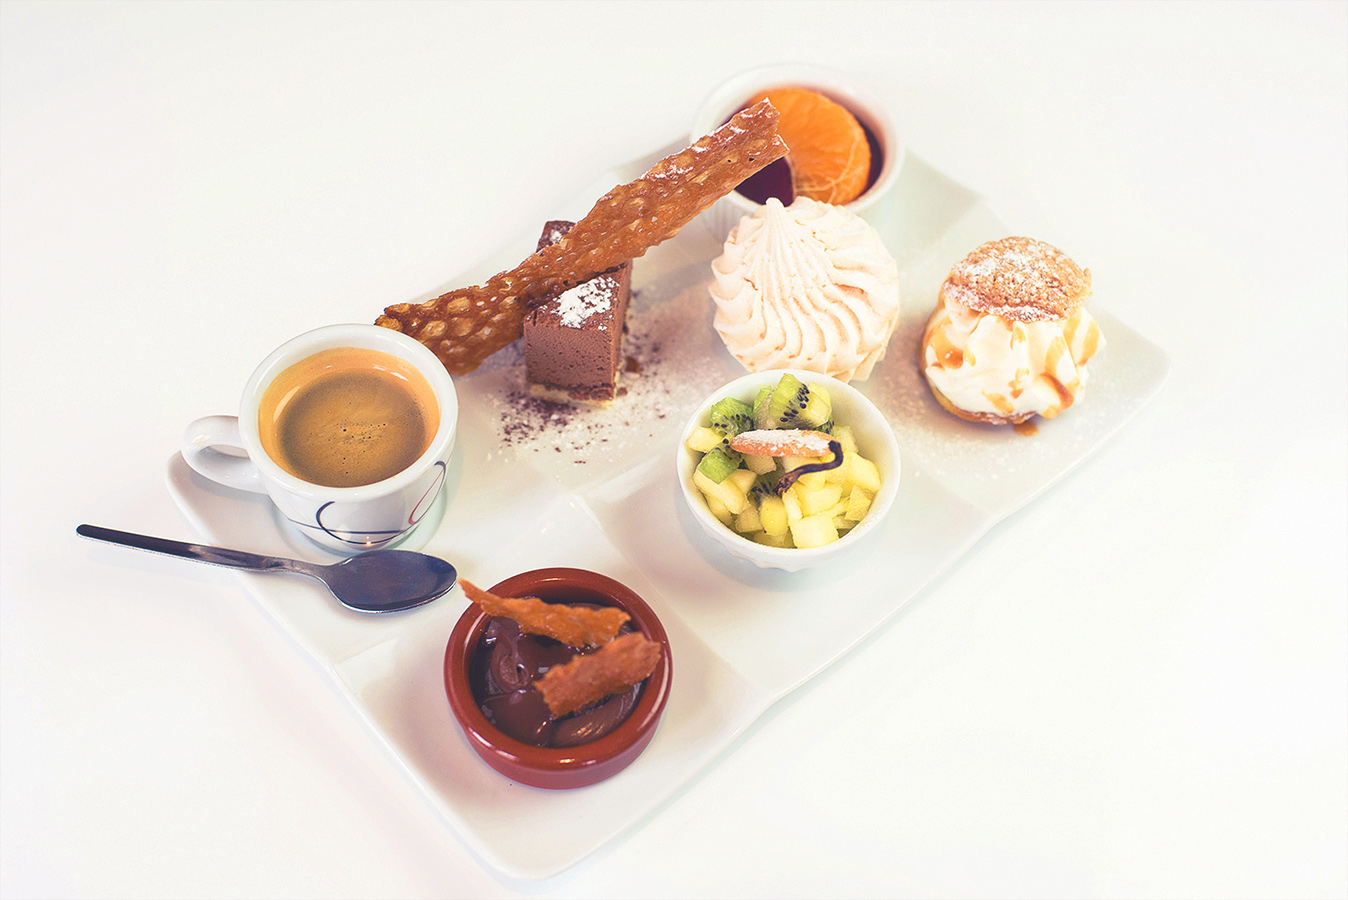 Cafe-gourmand-01